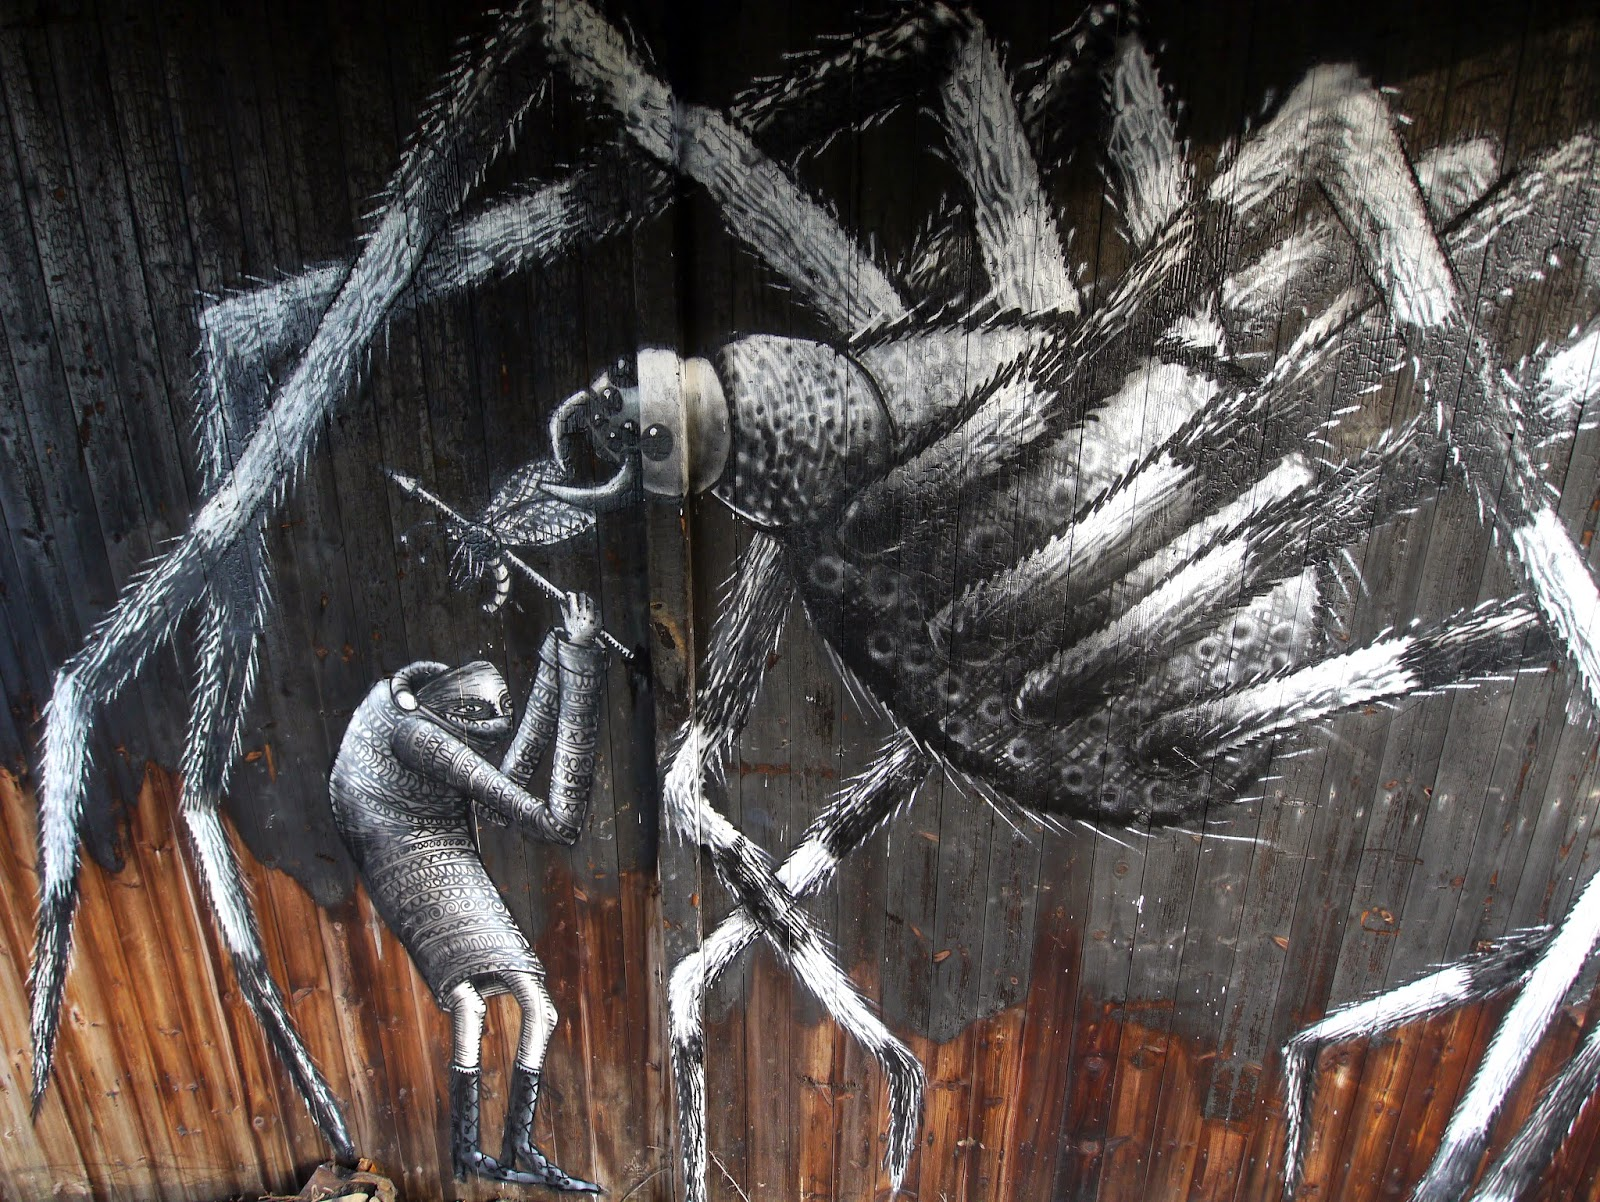 phlegm-the-spider-in-mosborough-sheffield-02